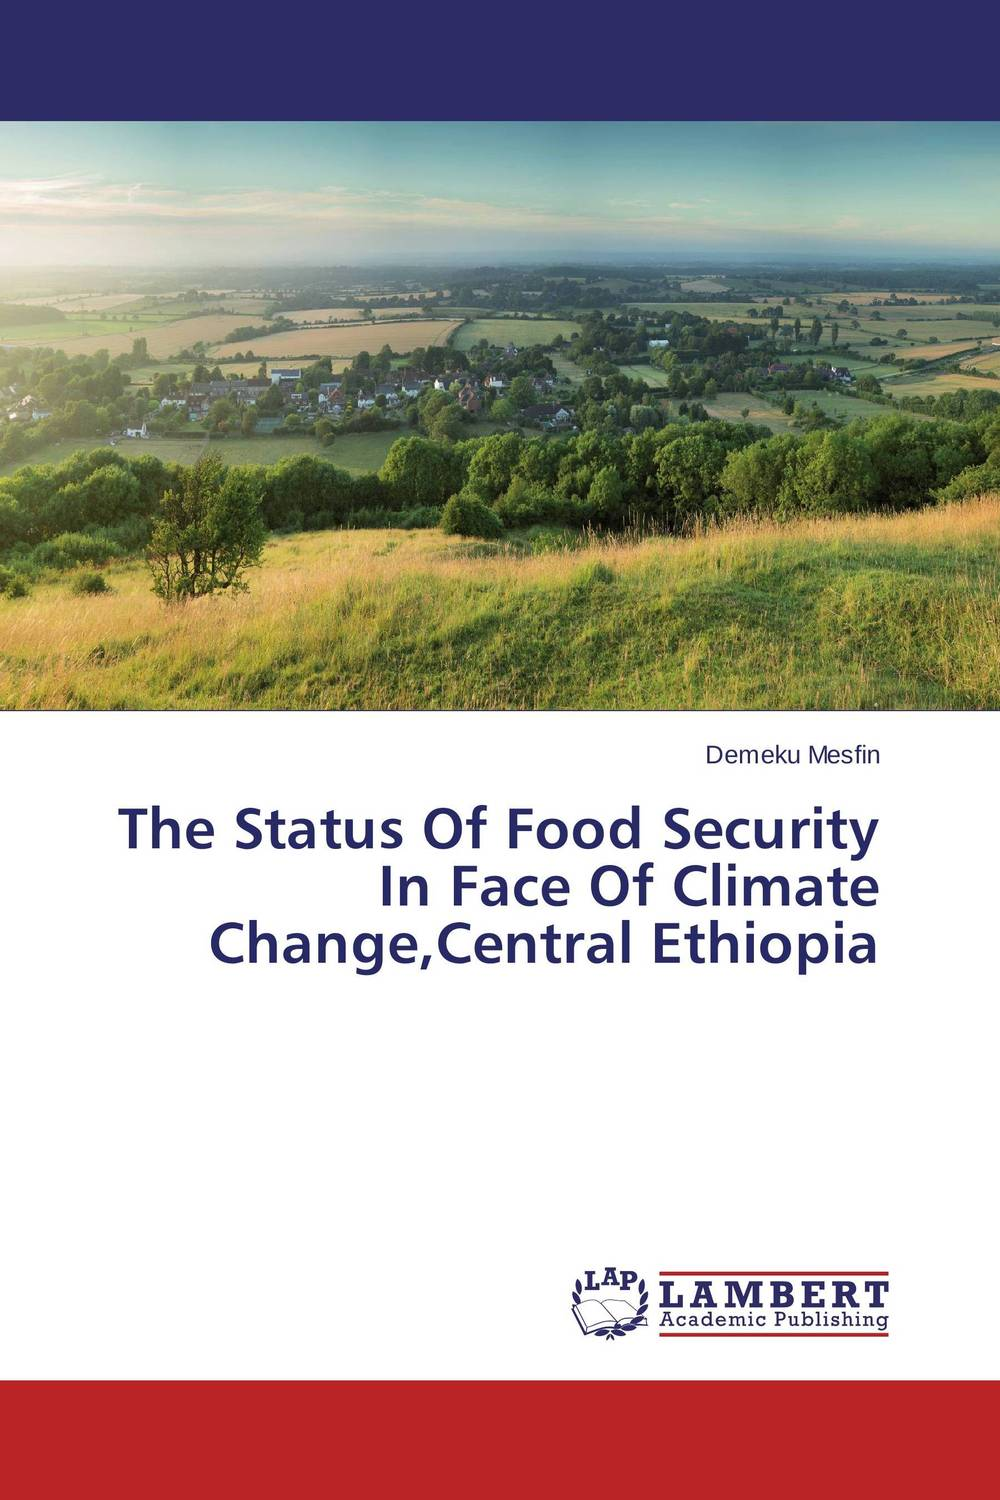 Фото The Status Of Food Security In Face Of Climate Change,Central Ethiopia cervical cancer in amhara region in ethiopia